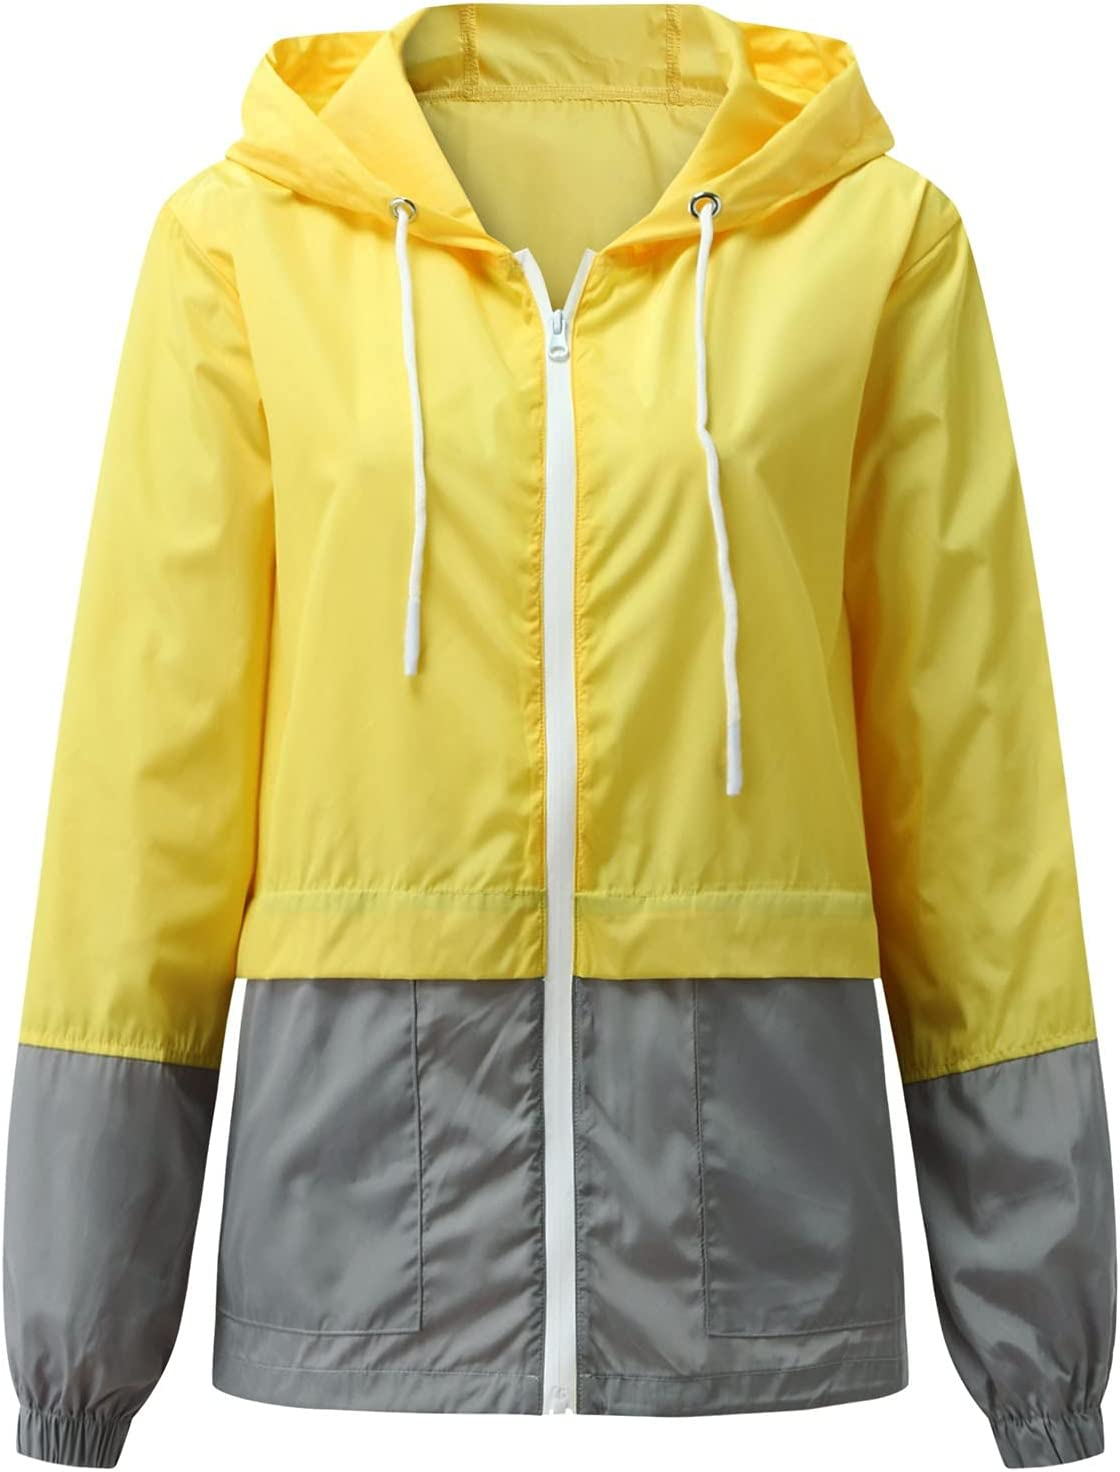 Smileyth Women's OFFicial store Oklahoma City Mall Waterproof Hooded Windbreaker Casual Colorblock